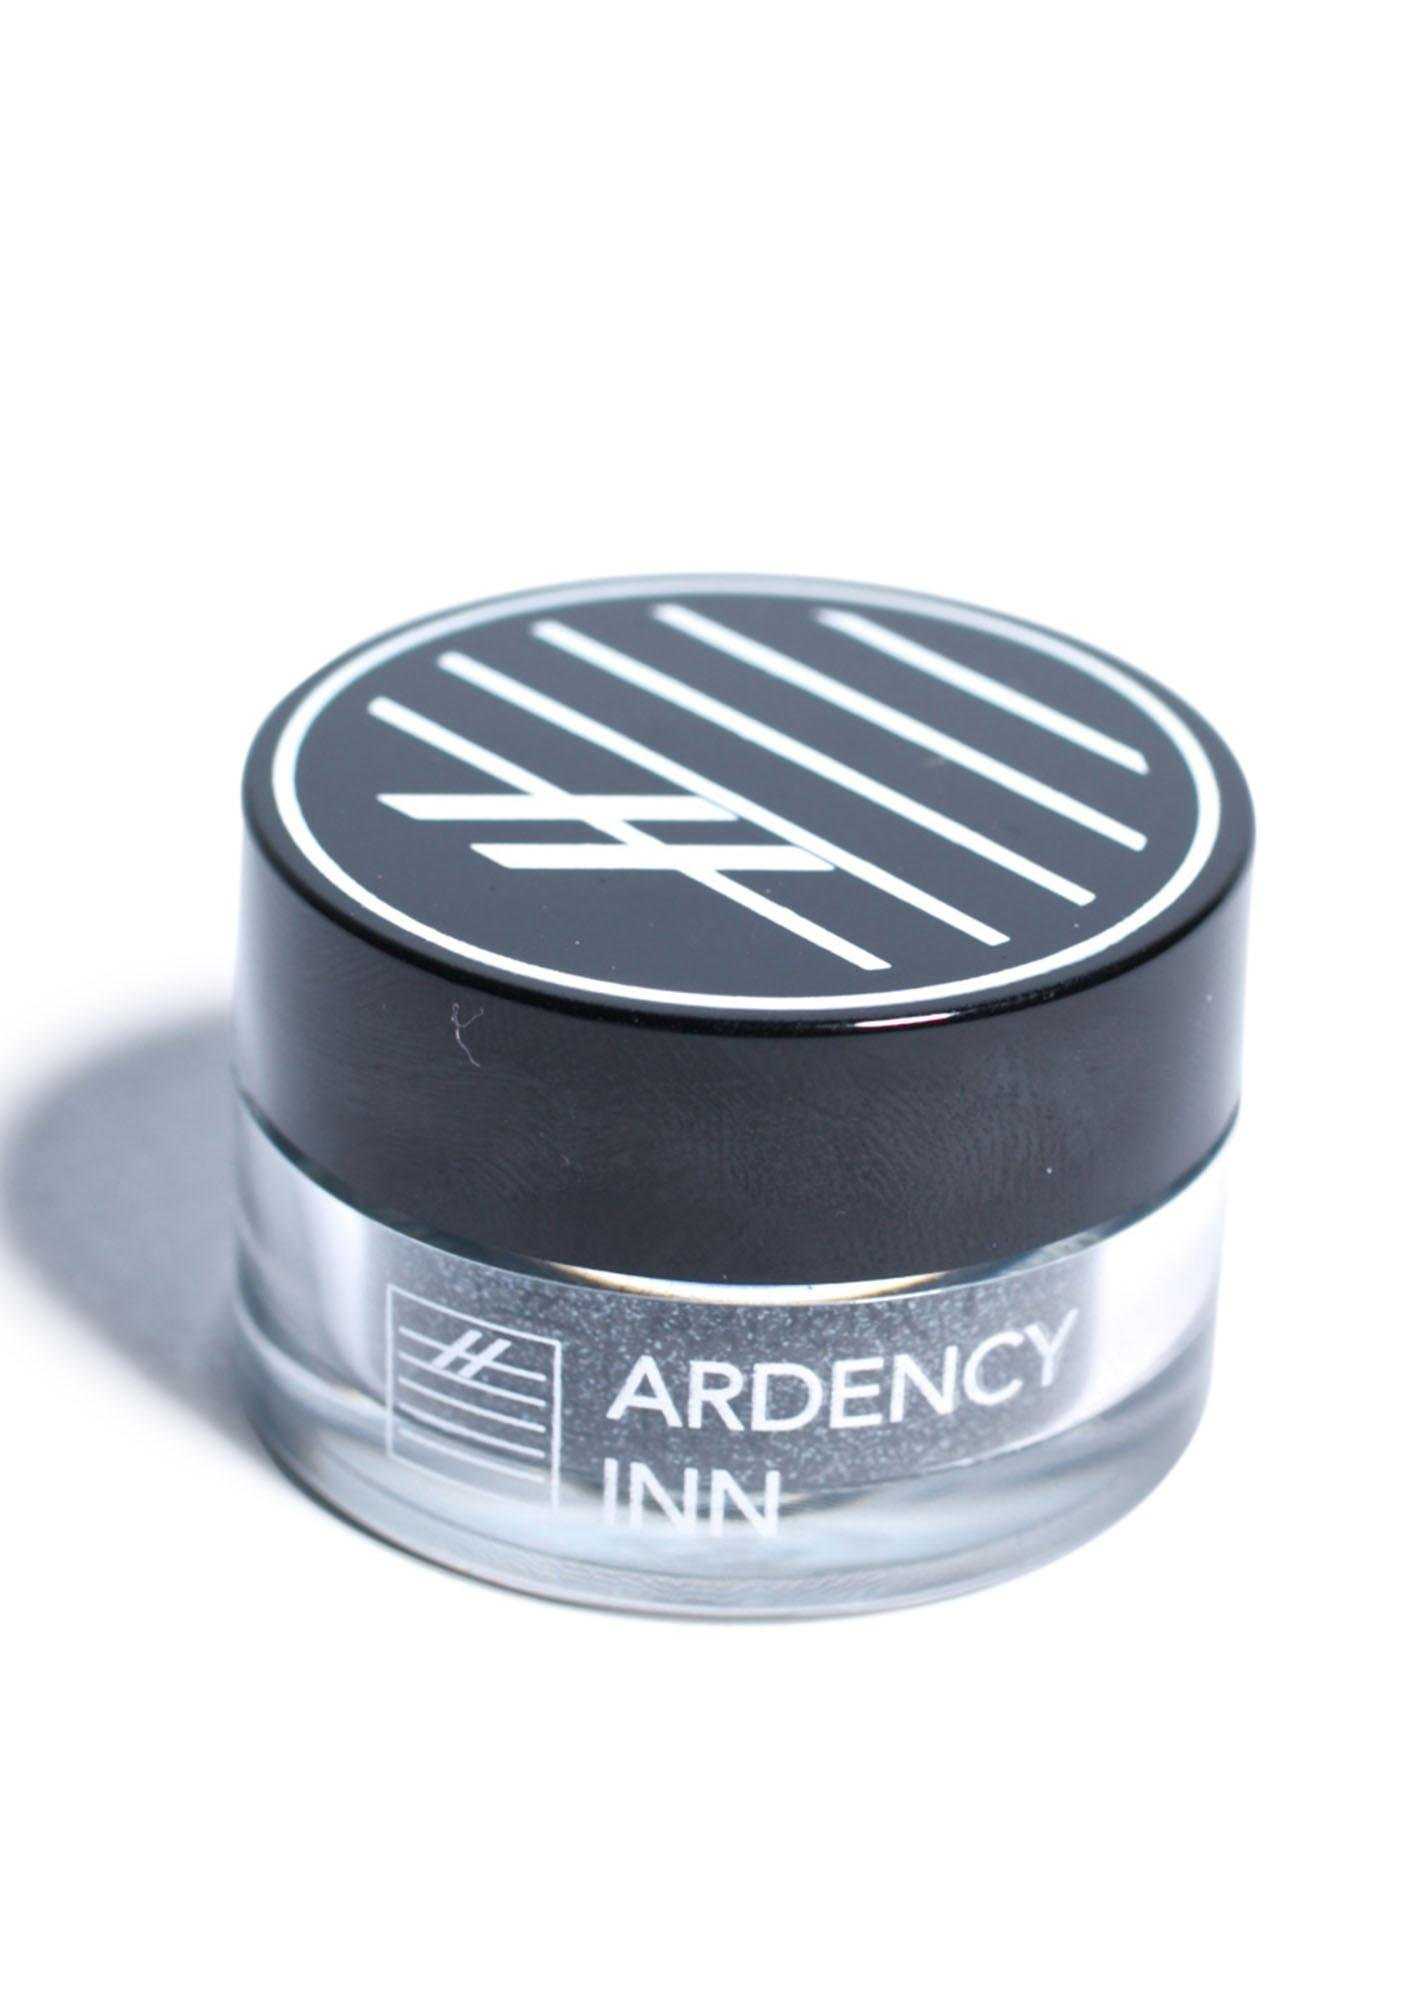 Ardency Inn Borealis Black Modster Light Catching Eye Powder